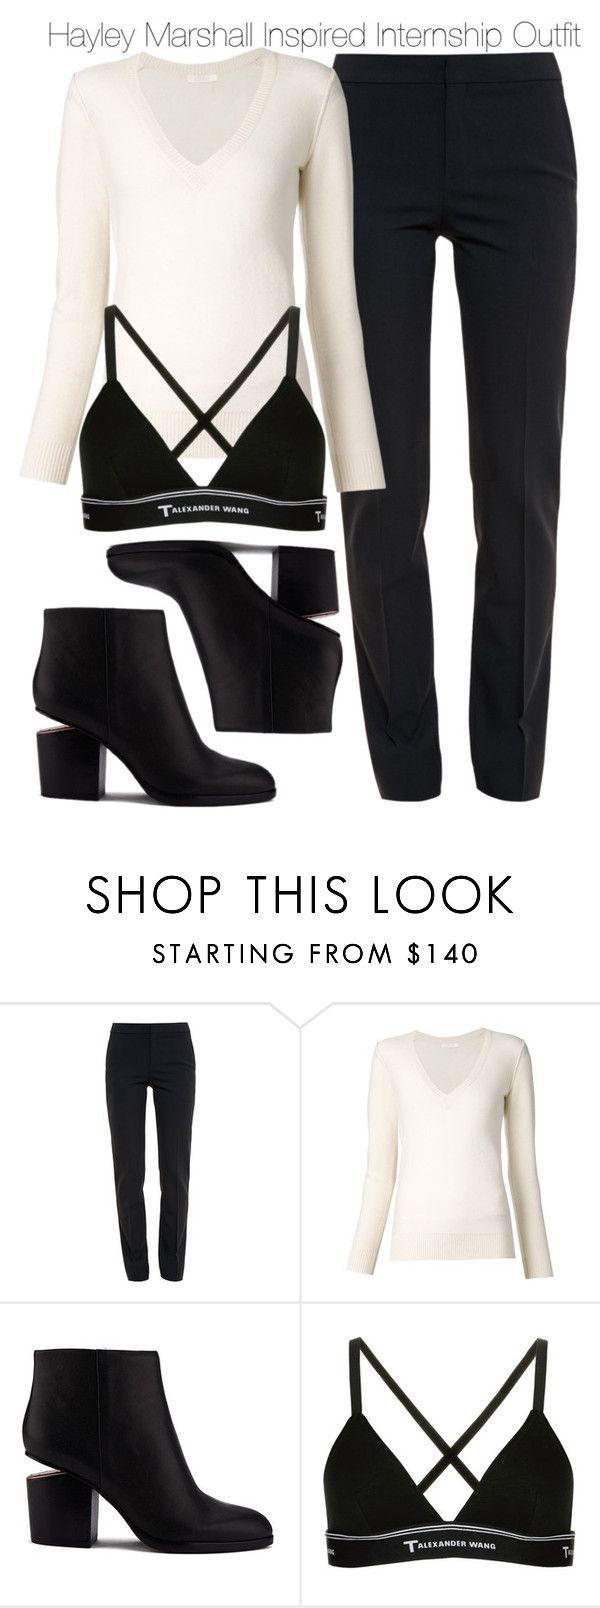 """""""Hayley Marshall Inspired Internship Outfit"""" by staystronng ❤ liked on Polyvore featuring Chloé, Alexander Wang, T By Alexander Wang, to, Work, internship and hayleymarshall"""